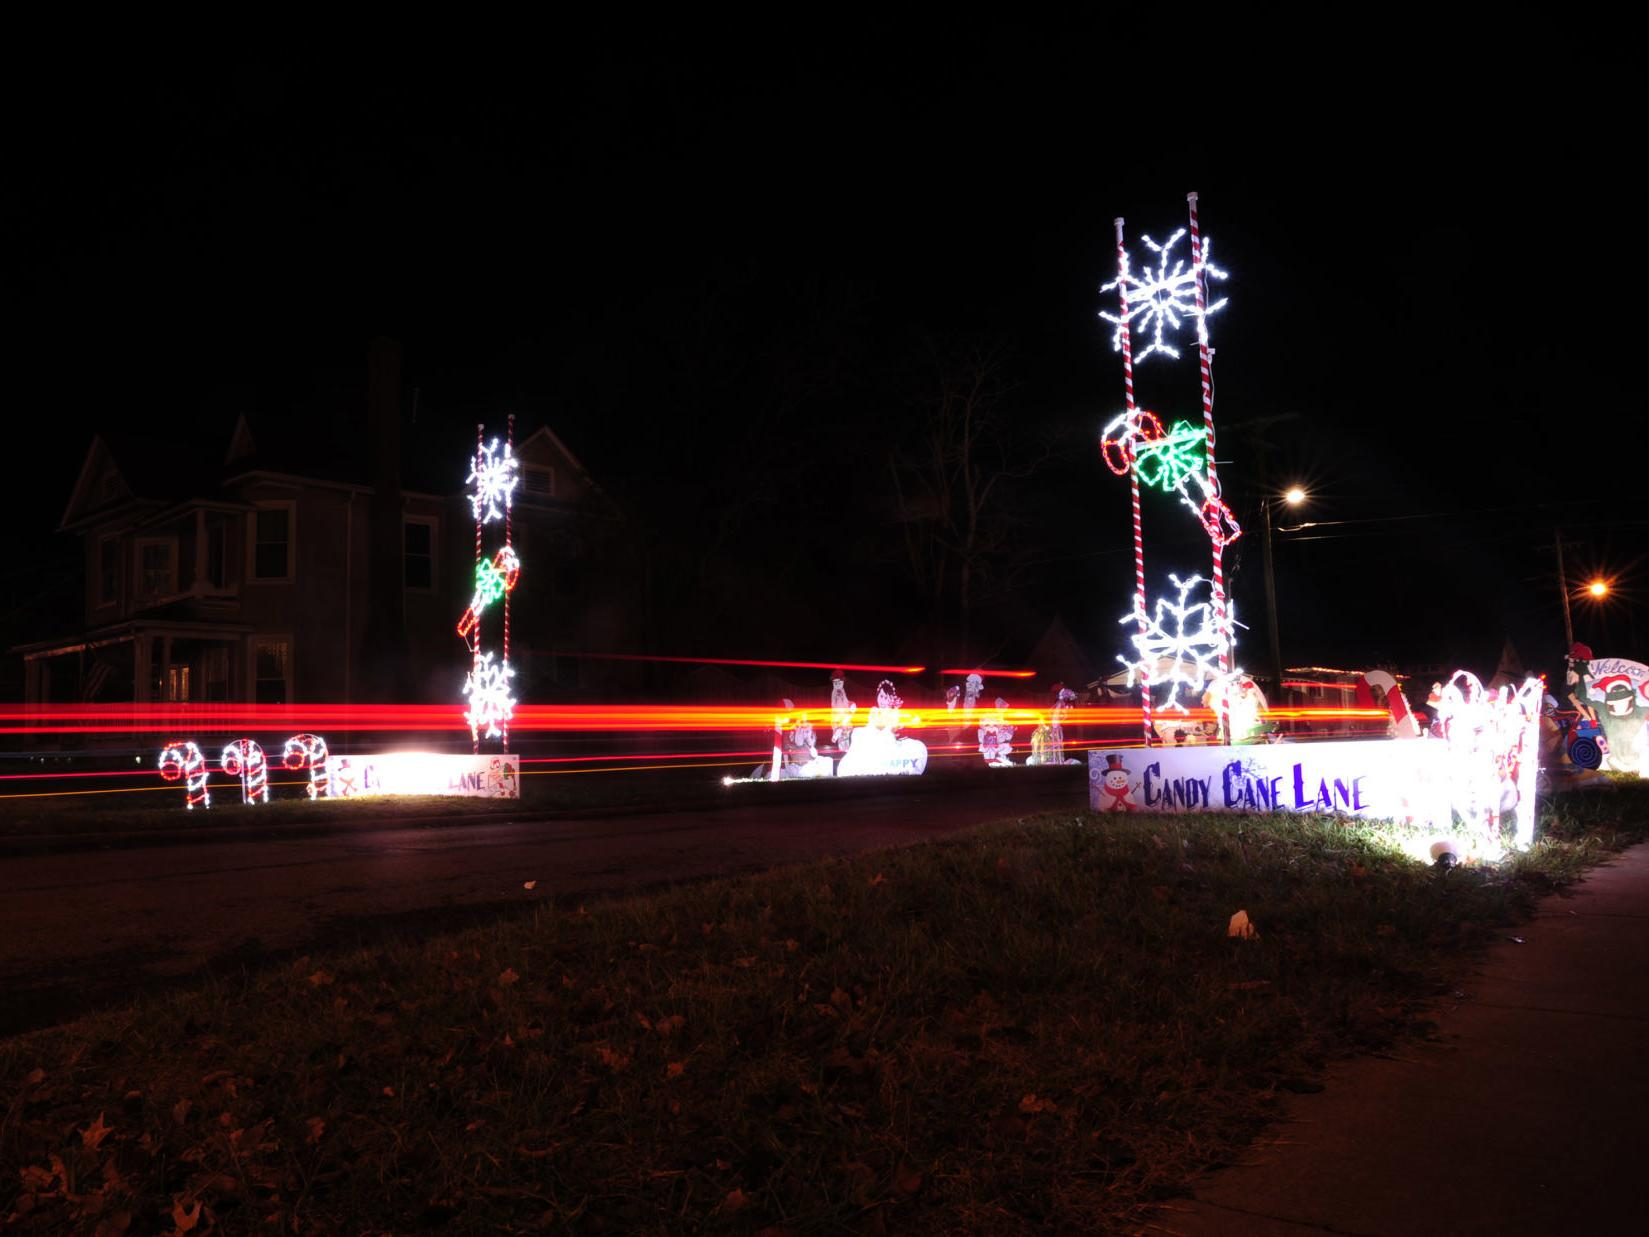 Frankfort Christmas Lights 2021 Holiday In Lights Candy Cane Lane From The Beginning Life Style Magazine Thesouthern Com